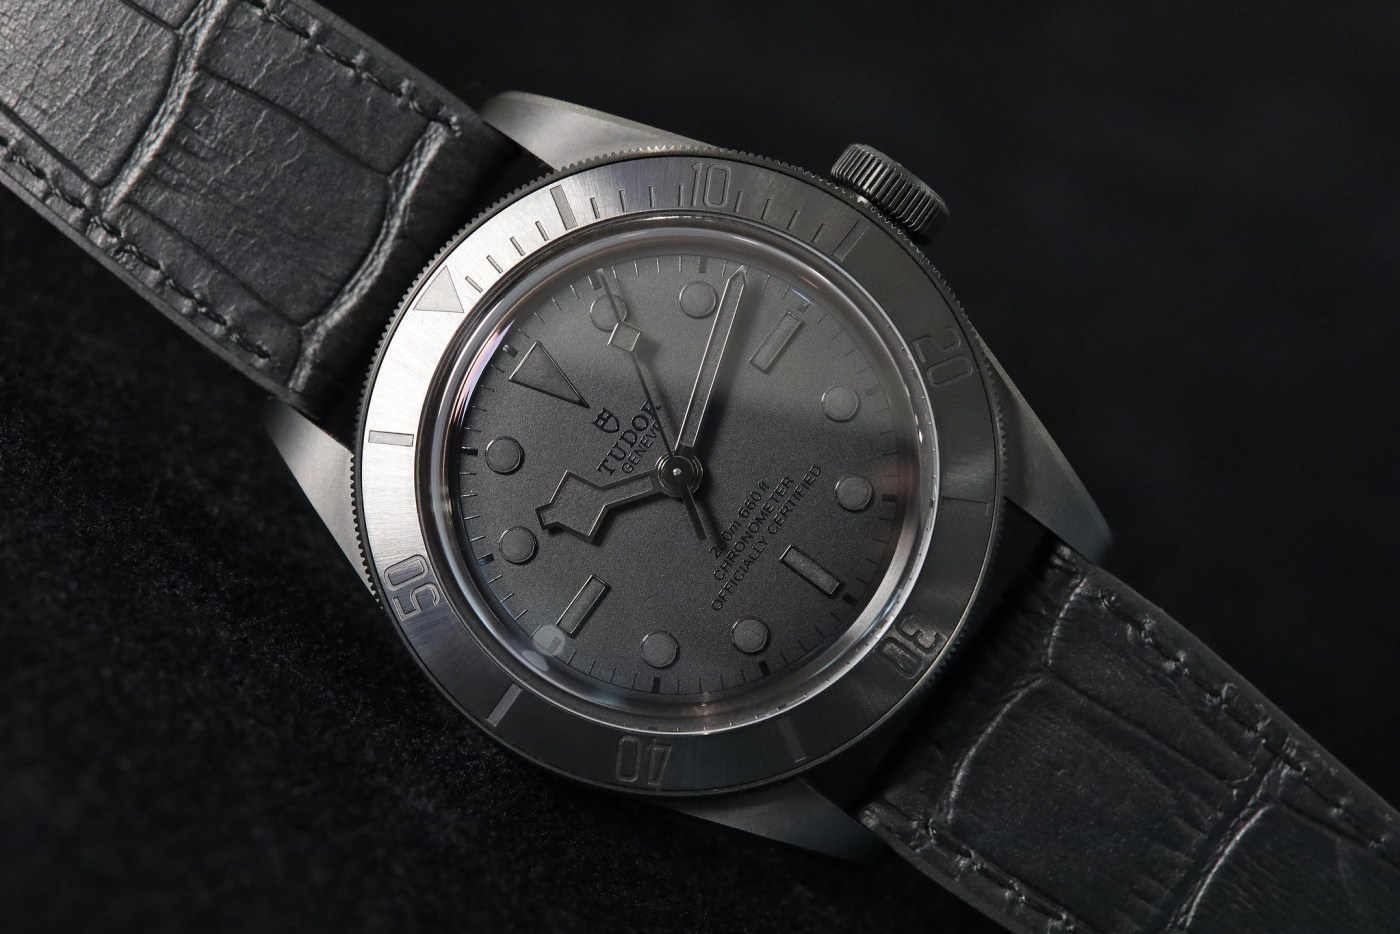 Tudor Black Bay Ceramic One Only Watch 2019